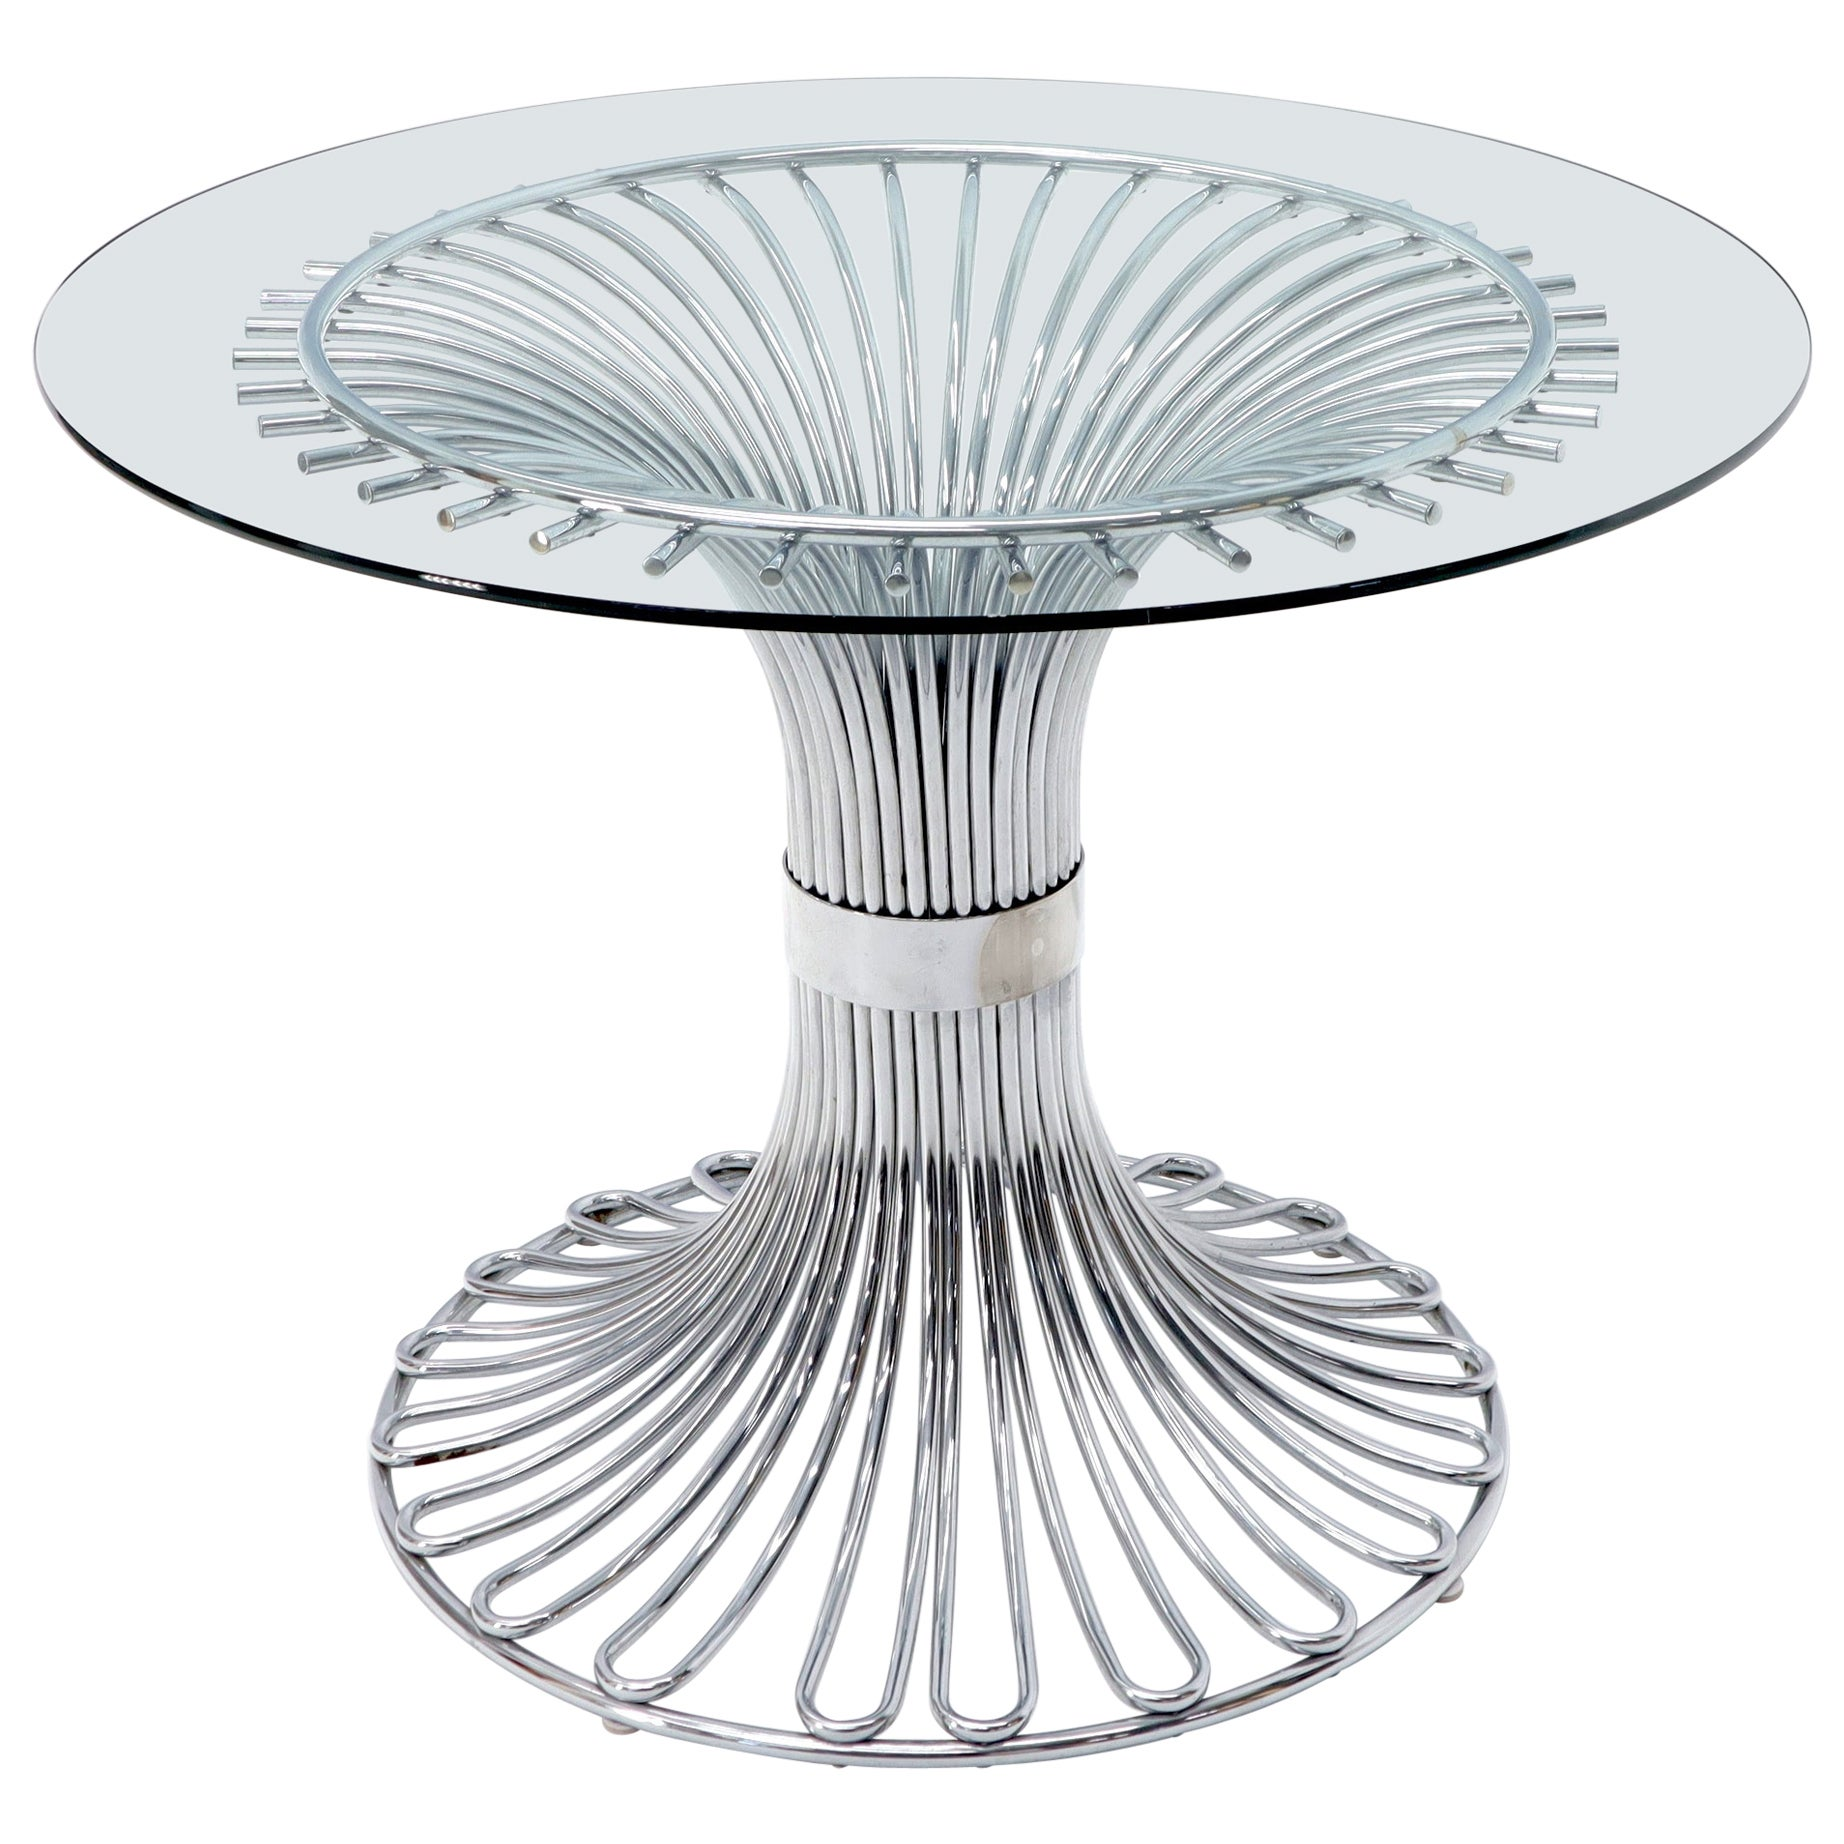 Bent Chrome Tube Pedestal Base Glass Top Dining Table